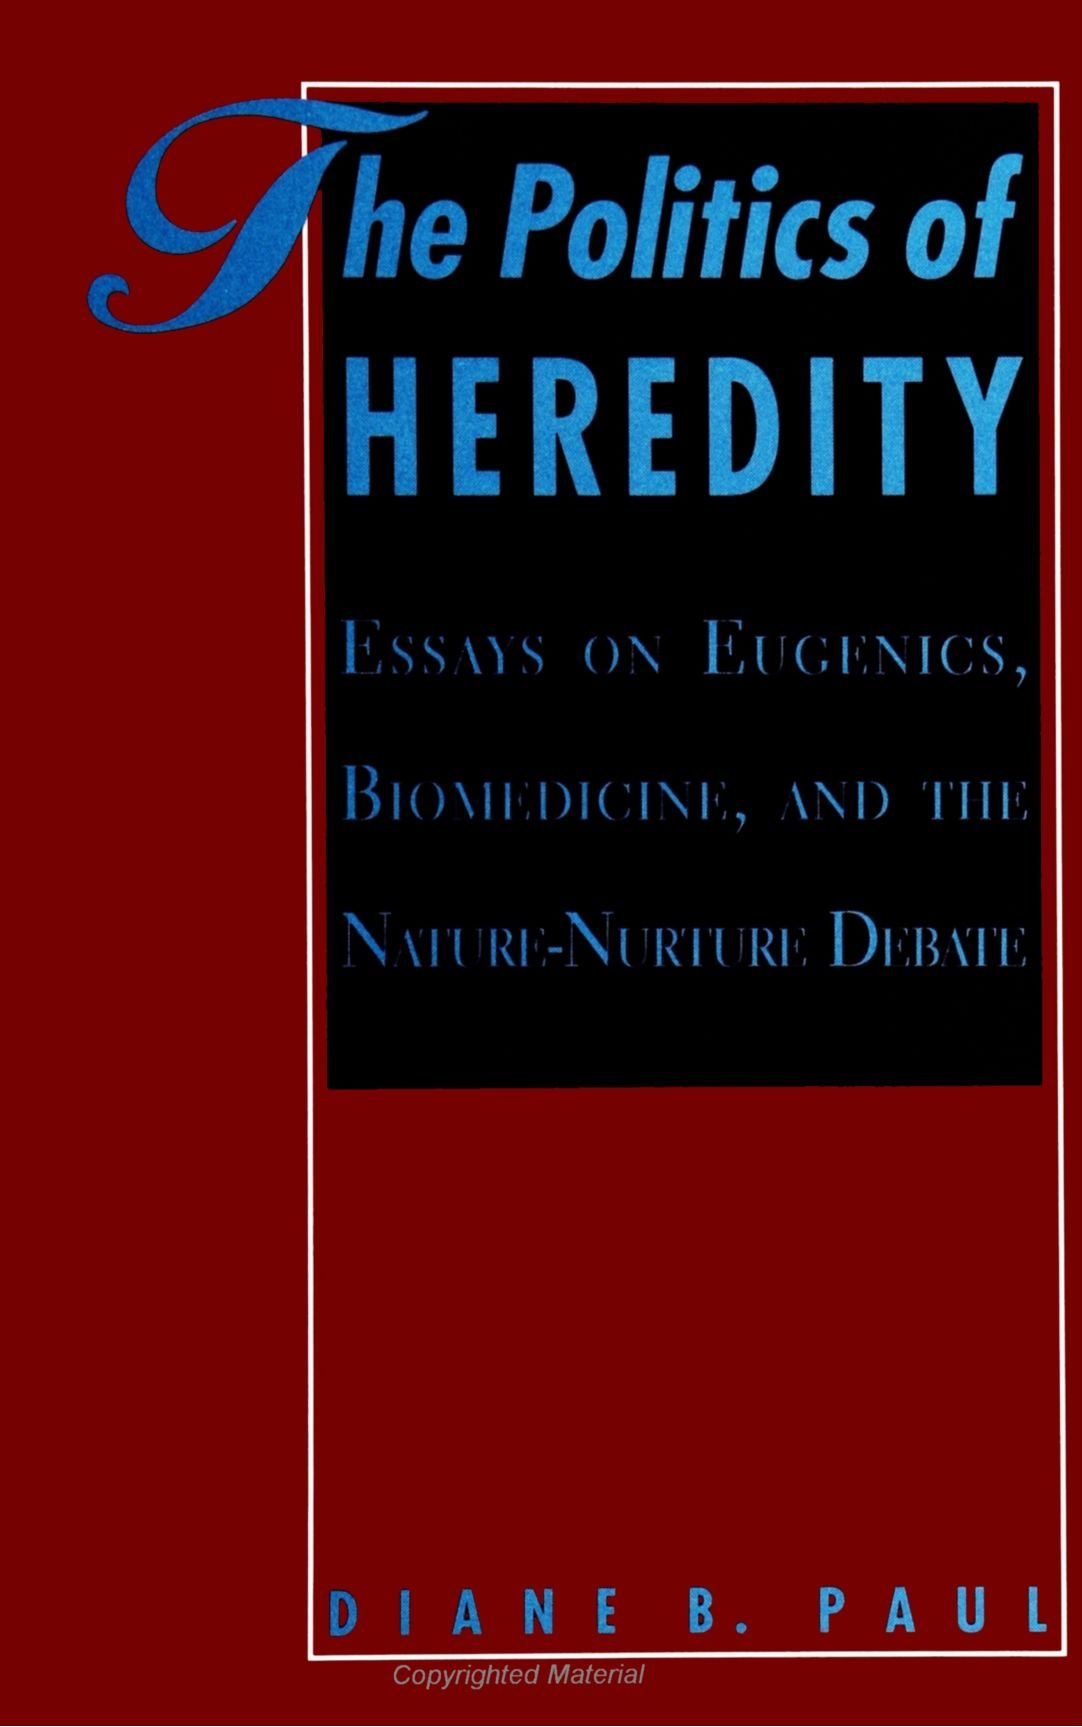 the politics of heredity essays on eugenics biomedicine and the the politics of heredity essays on eugenics biomedicine and the nature nurture debate suny series in philosophy and biology suny series